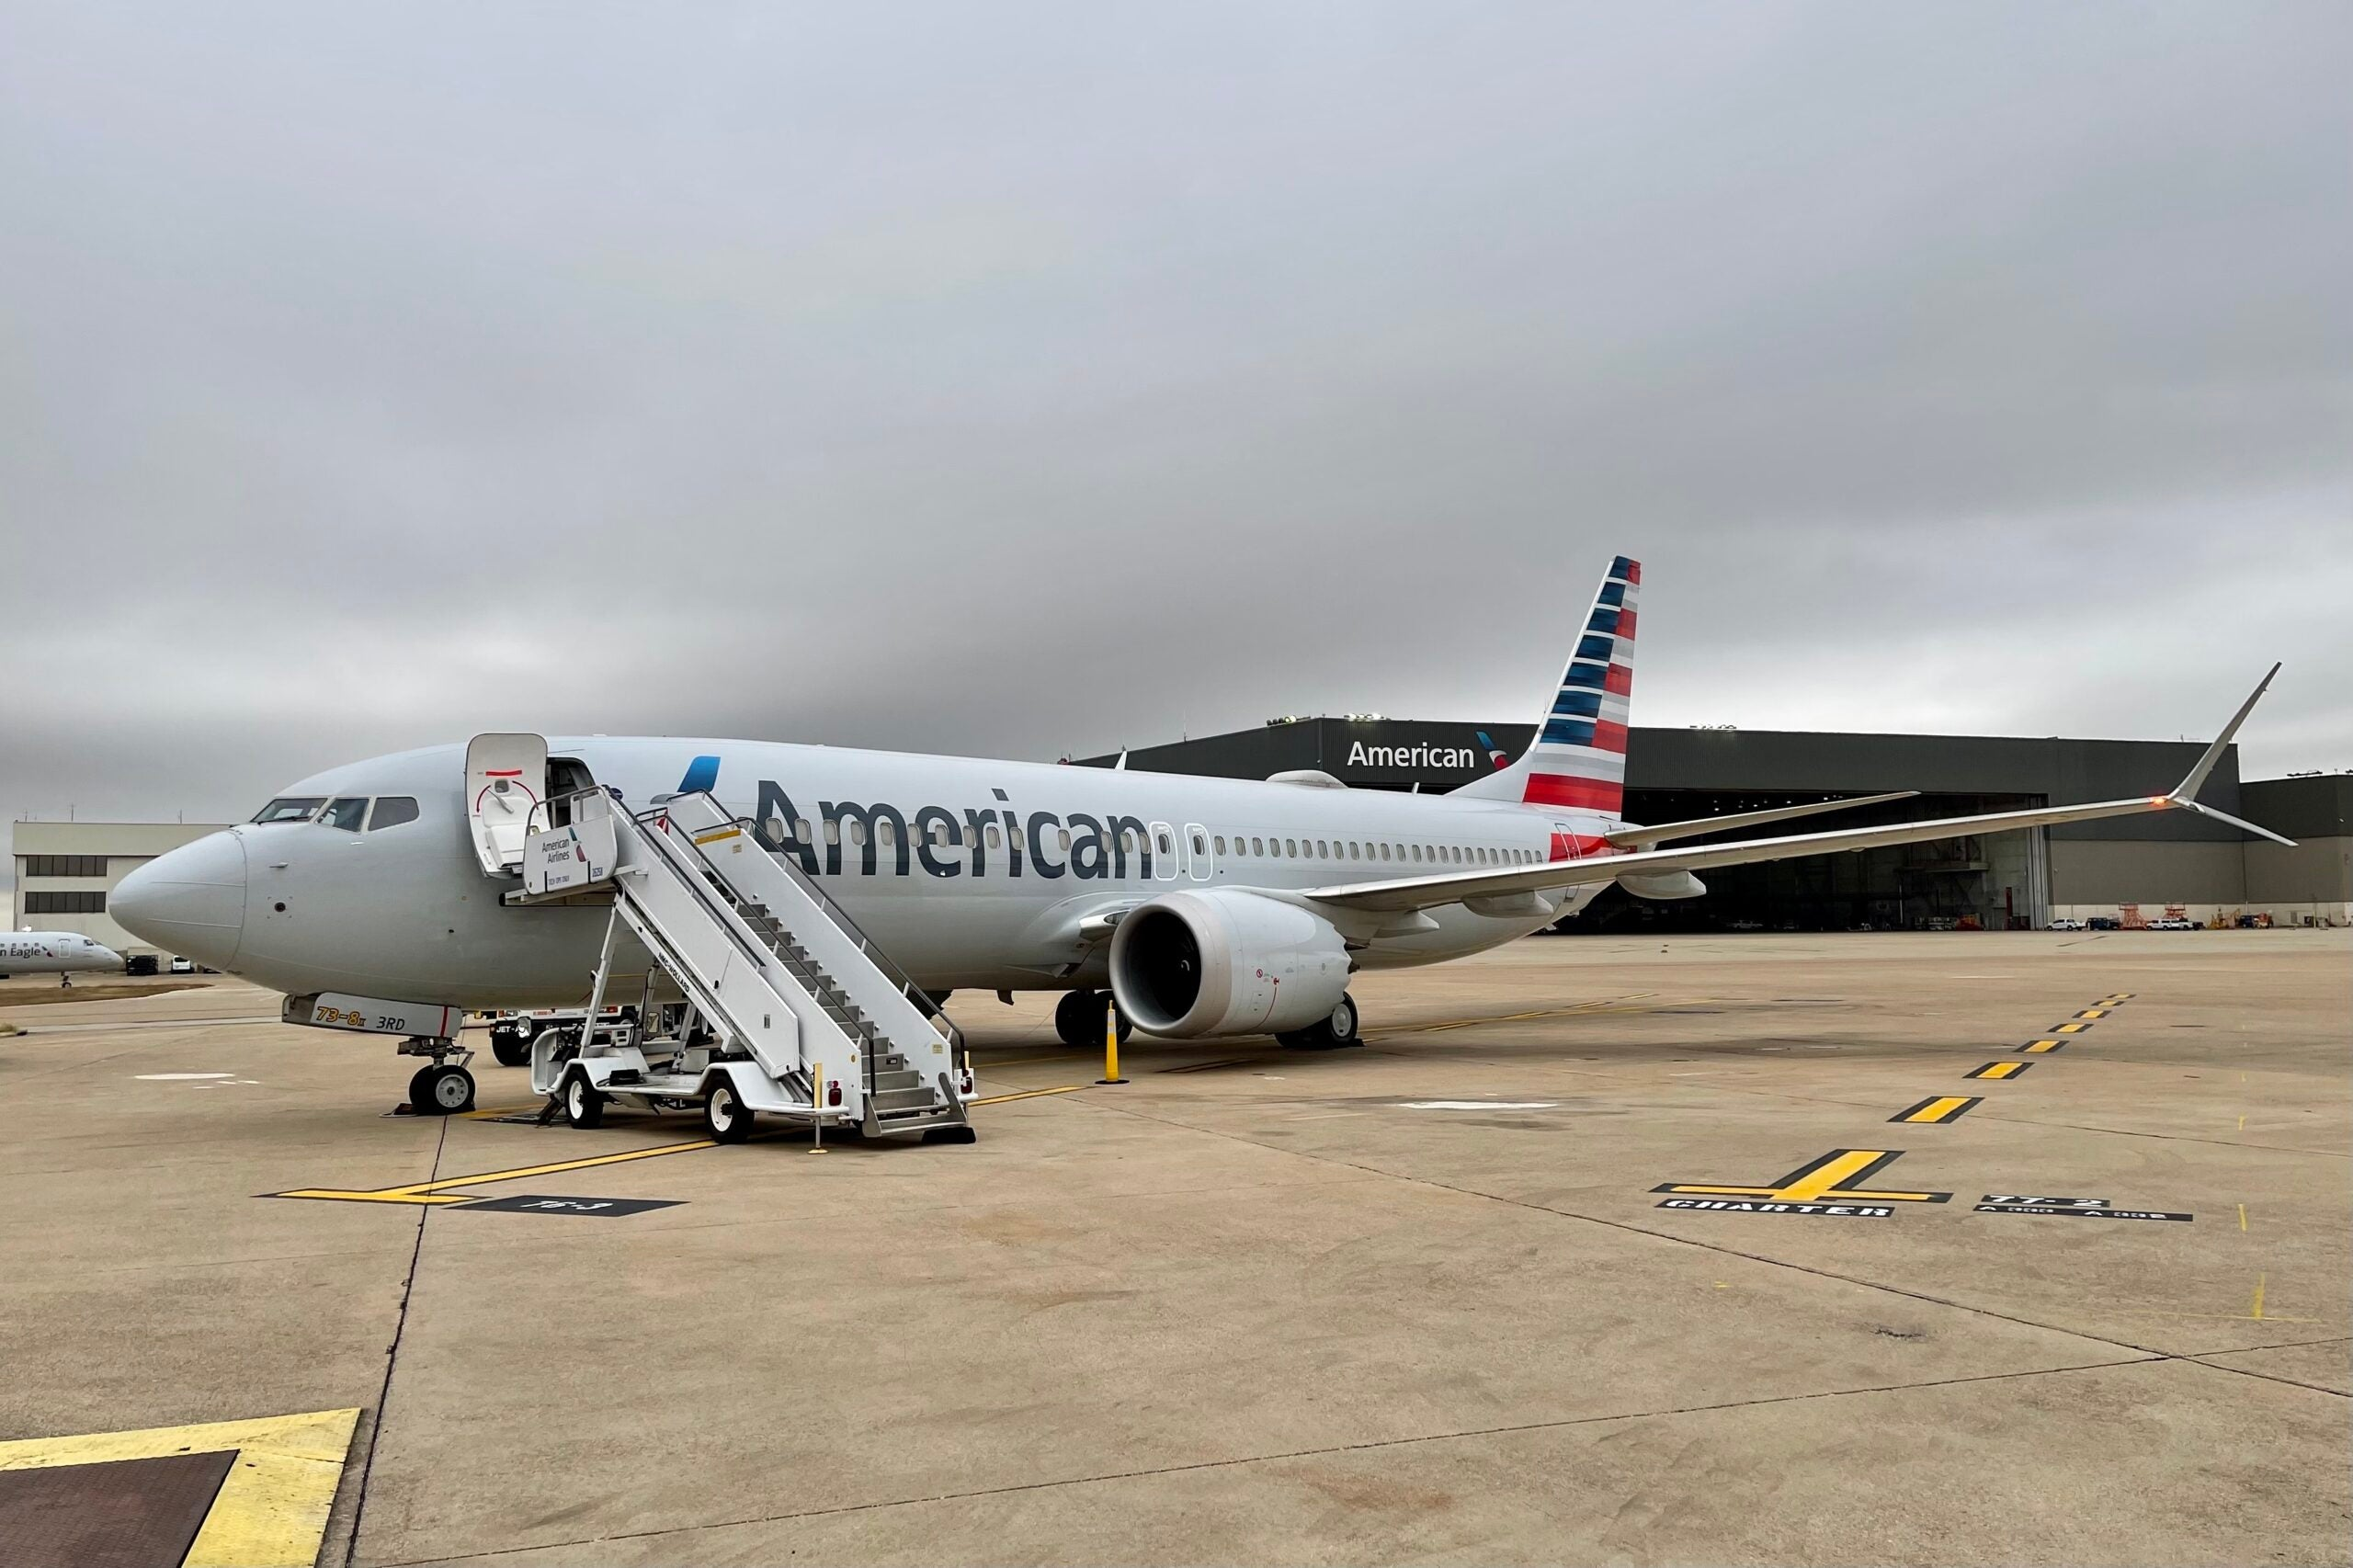 BREAKING: American Airlines flies first public 737 MAX since 2019 grounding